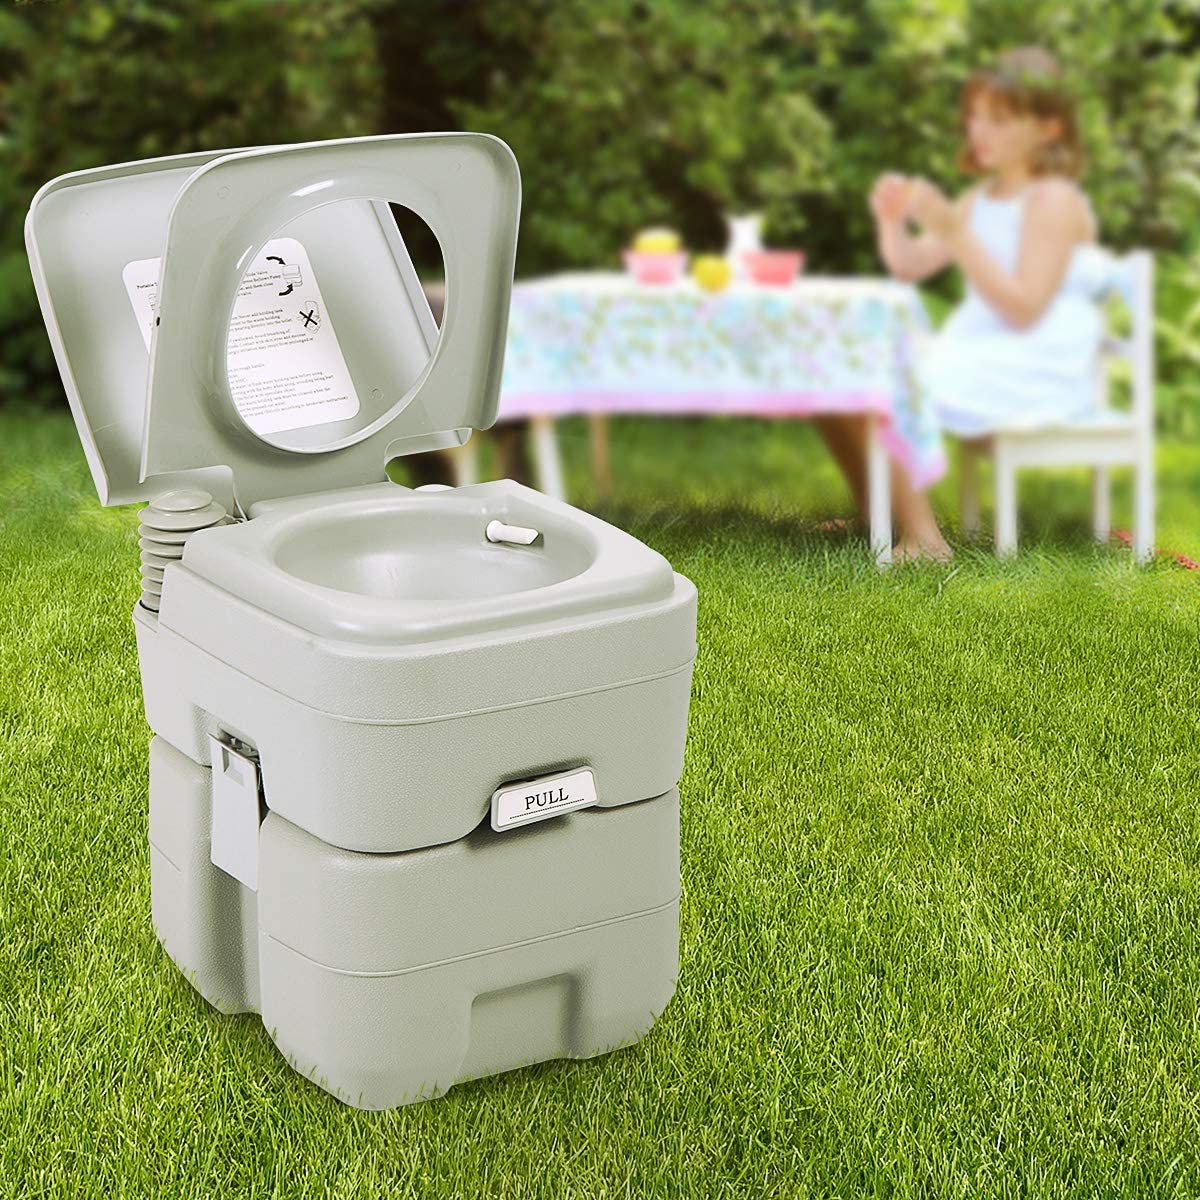 Sandinrayli Portable Toliet 5 Gallon Camping 20L Over safety item handling Toilet Outdoor